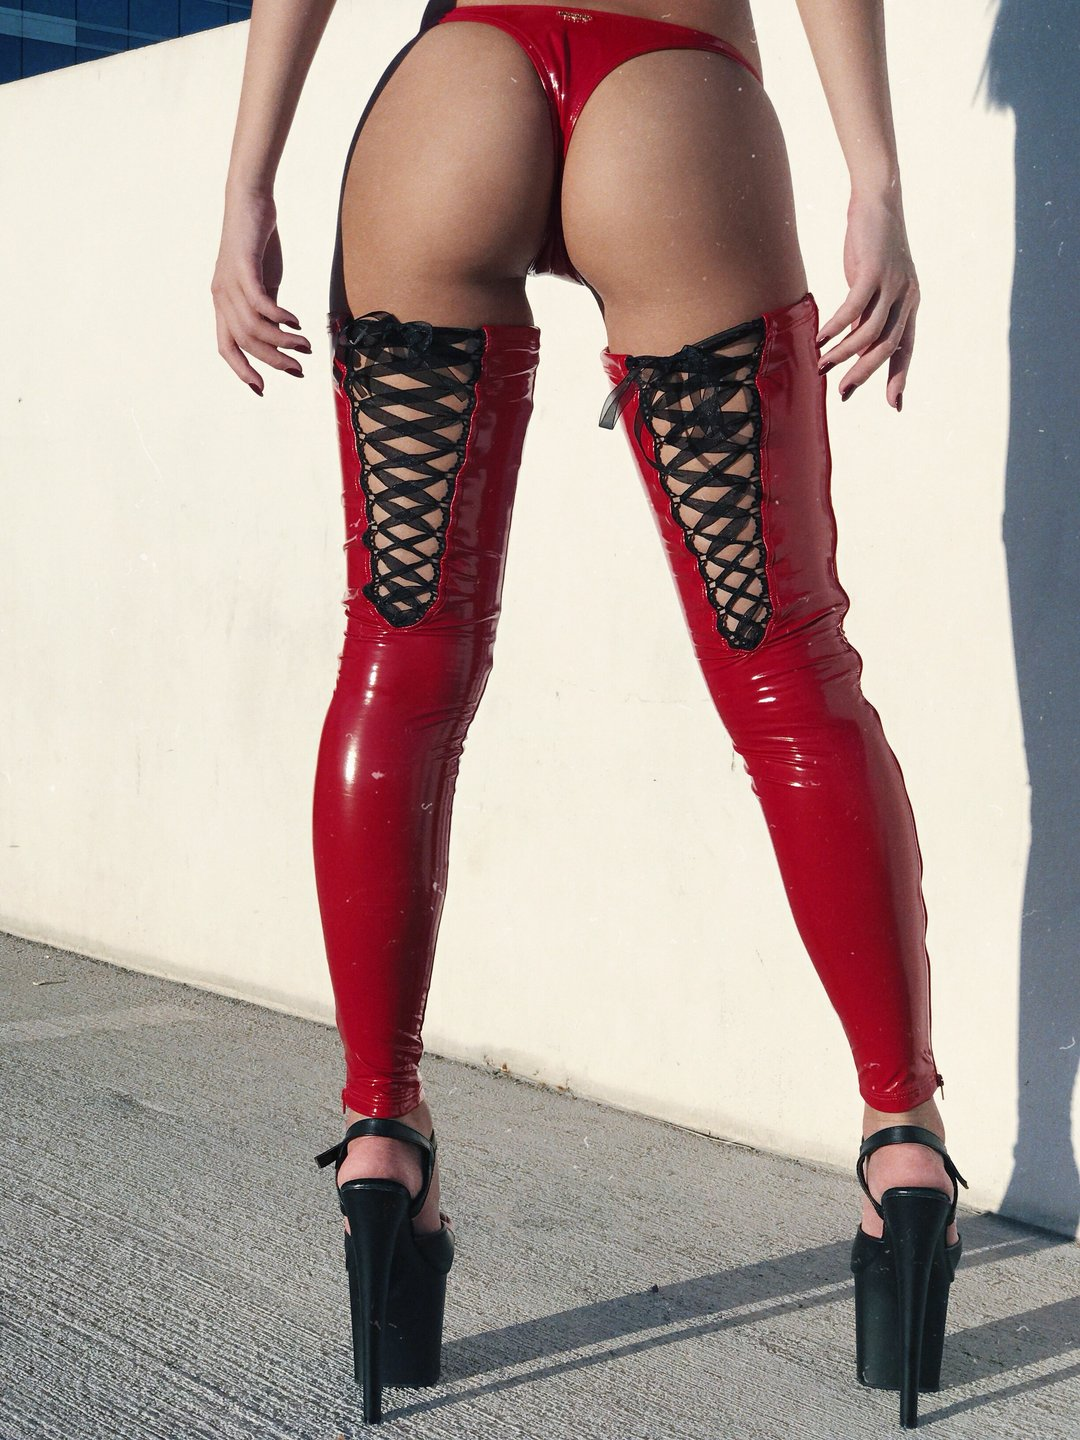 ALL THE FEELS: Sinner Vinyl Lace-up Thigh High in Red - NAUGHTY THOUGHTS